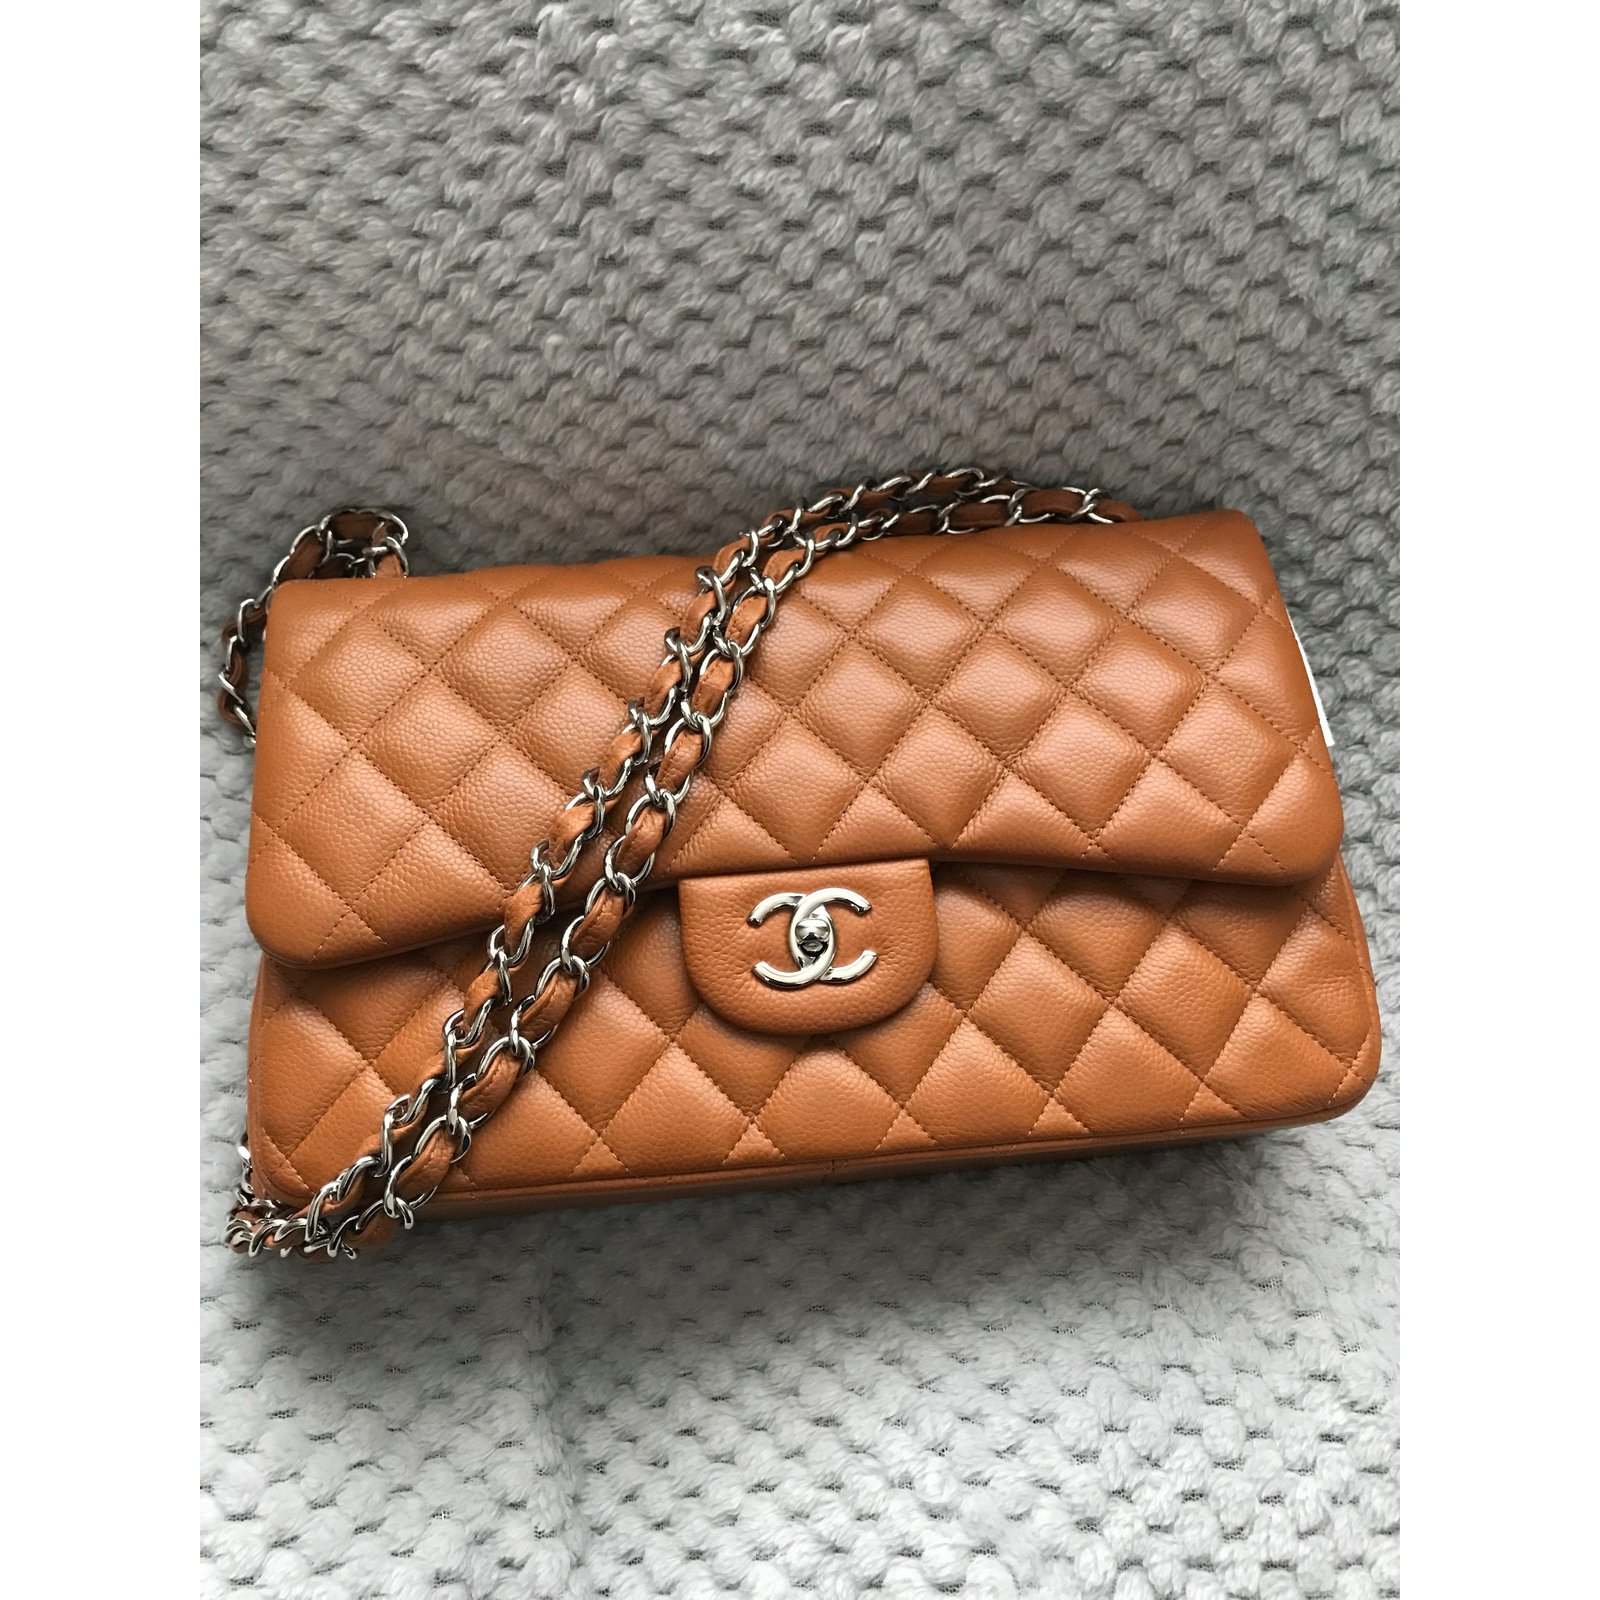 69150c345117 Facebook · Pin This. Chanel Chanel Jumbo Timeless Classic lined Flap Bag - Caviar  leather - Rich Caramel Handbags Leather